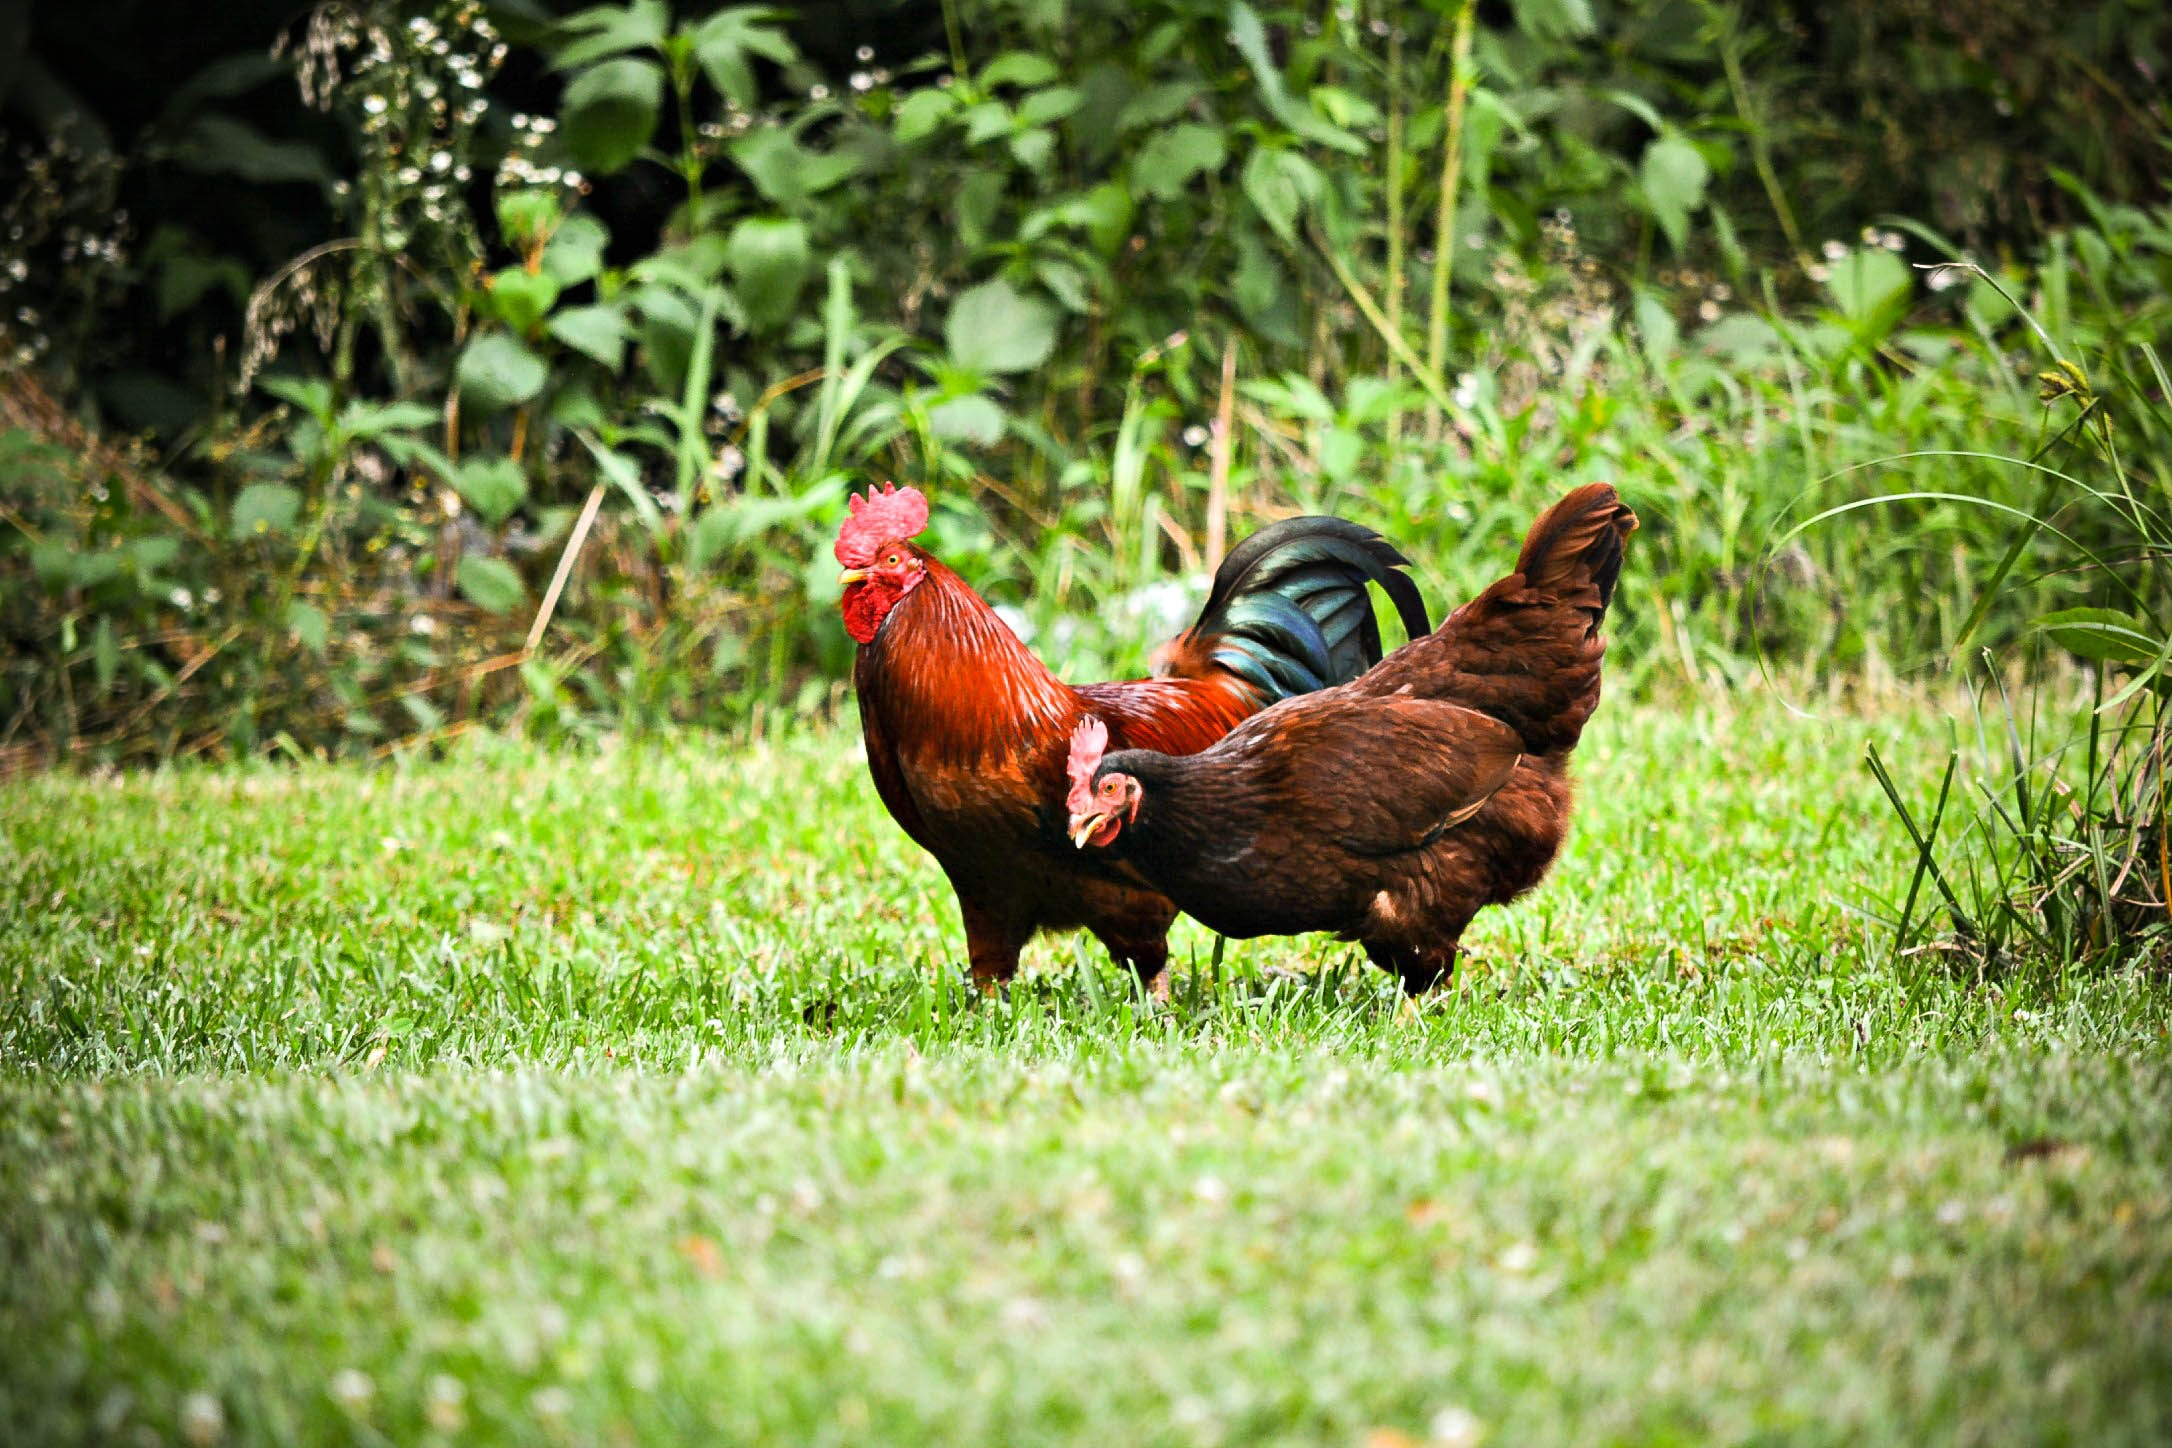 rooster and hen on grass field